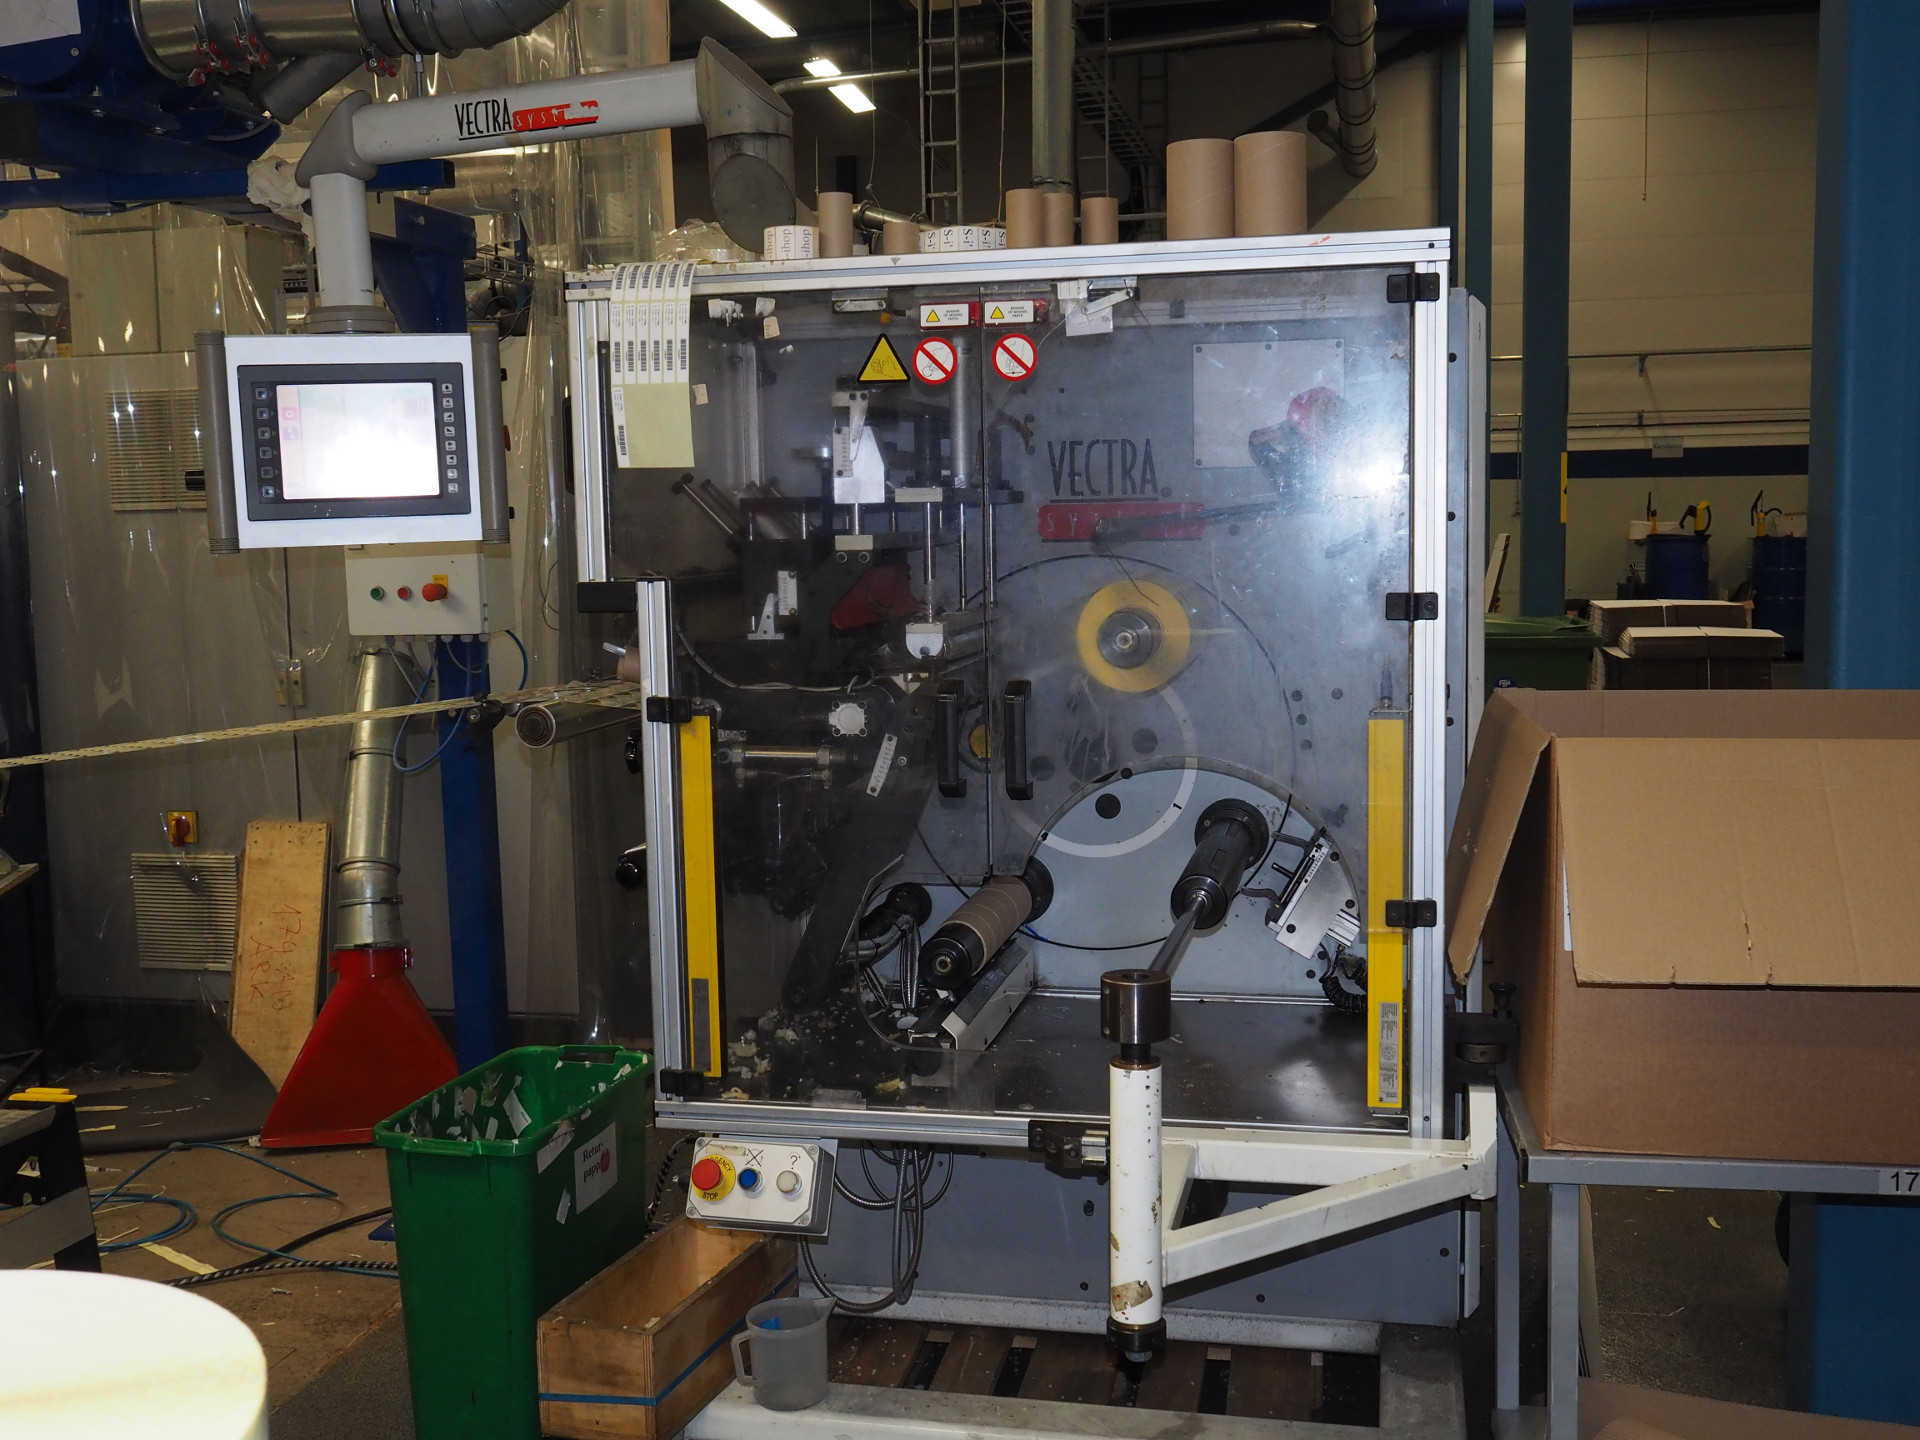 ABG Vectra Turret Rewinder Rewinding for smaller cores from 2003